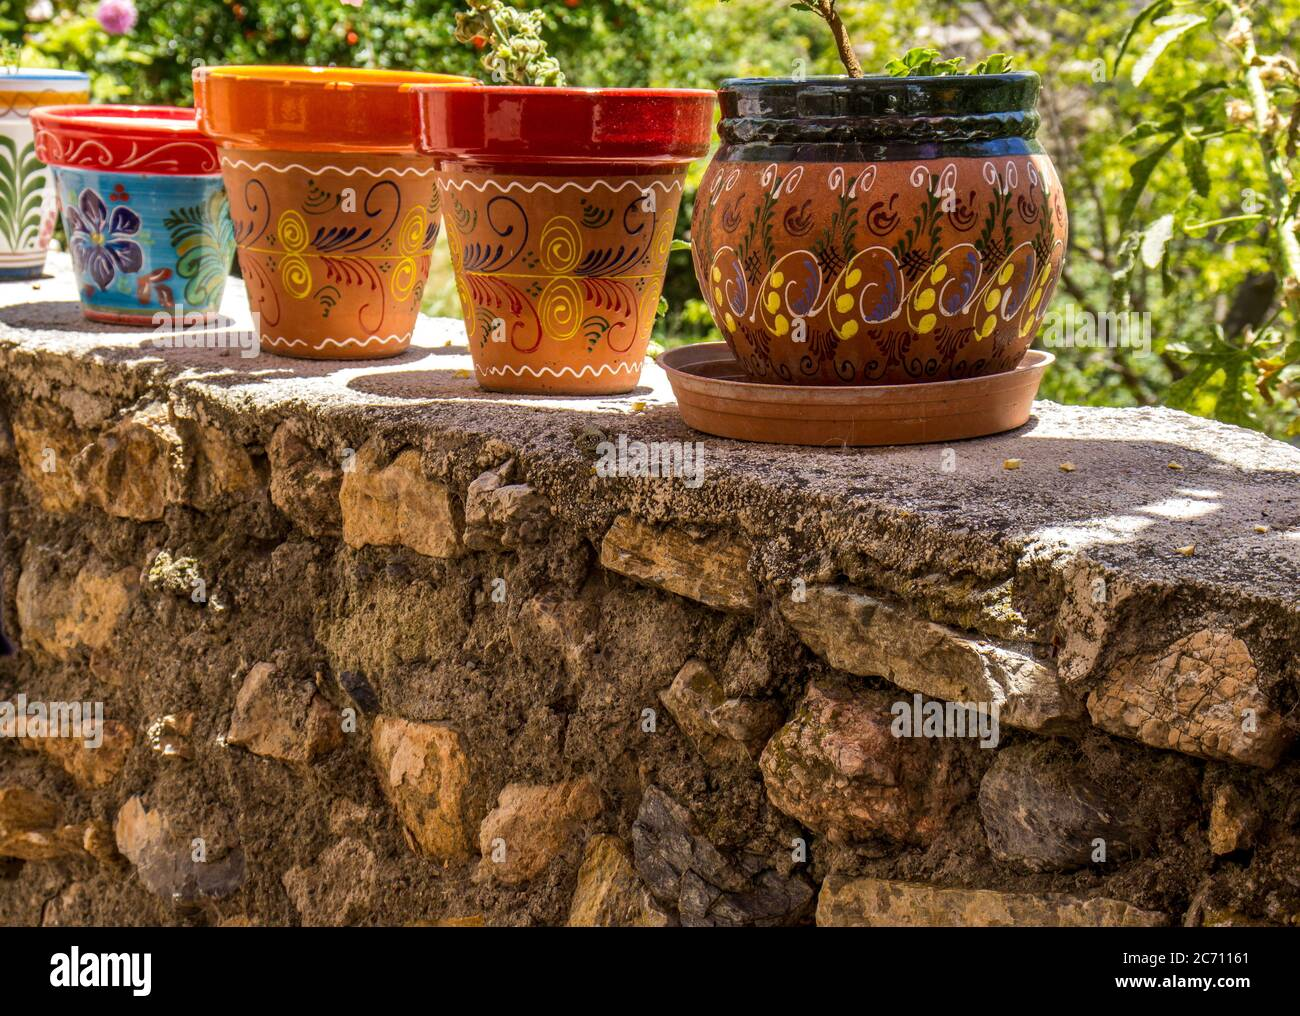 Painted Flower Pot High Resolution Stock Photography And Images Alamy